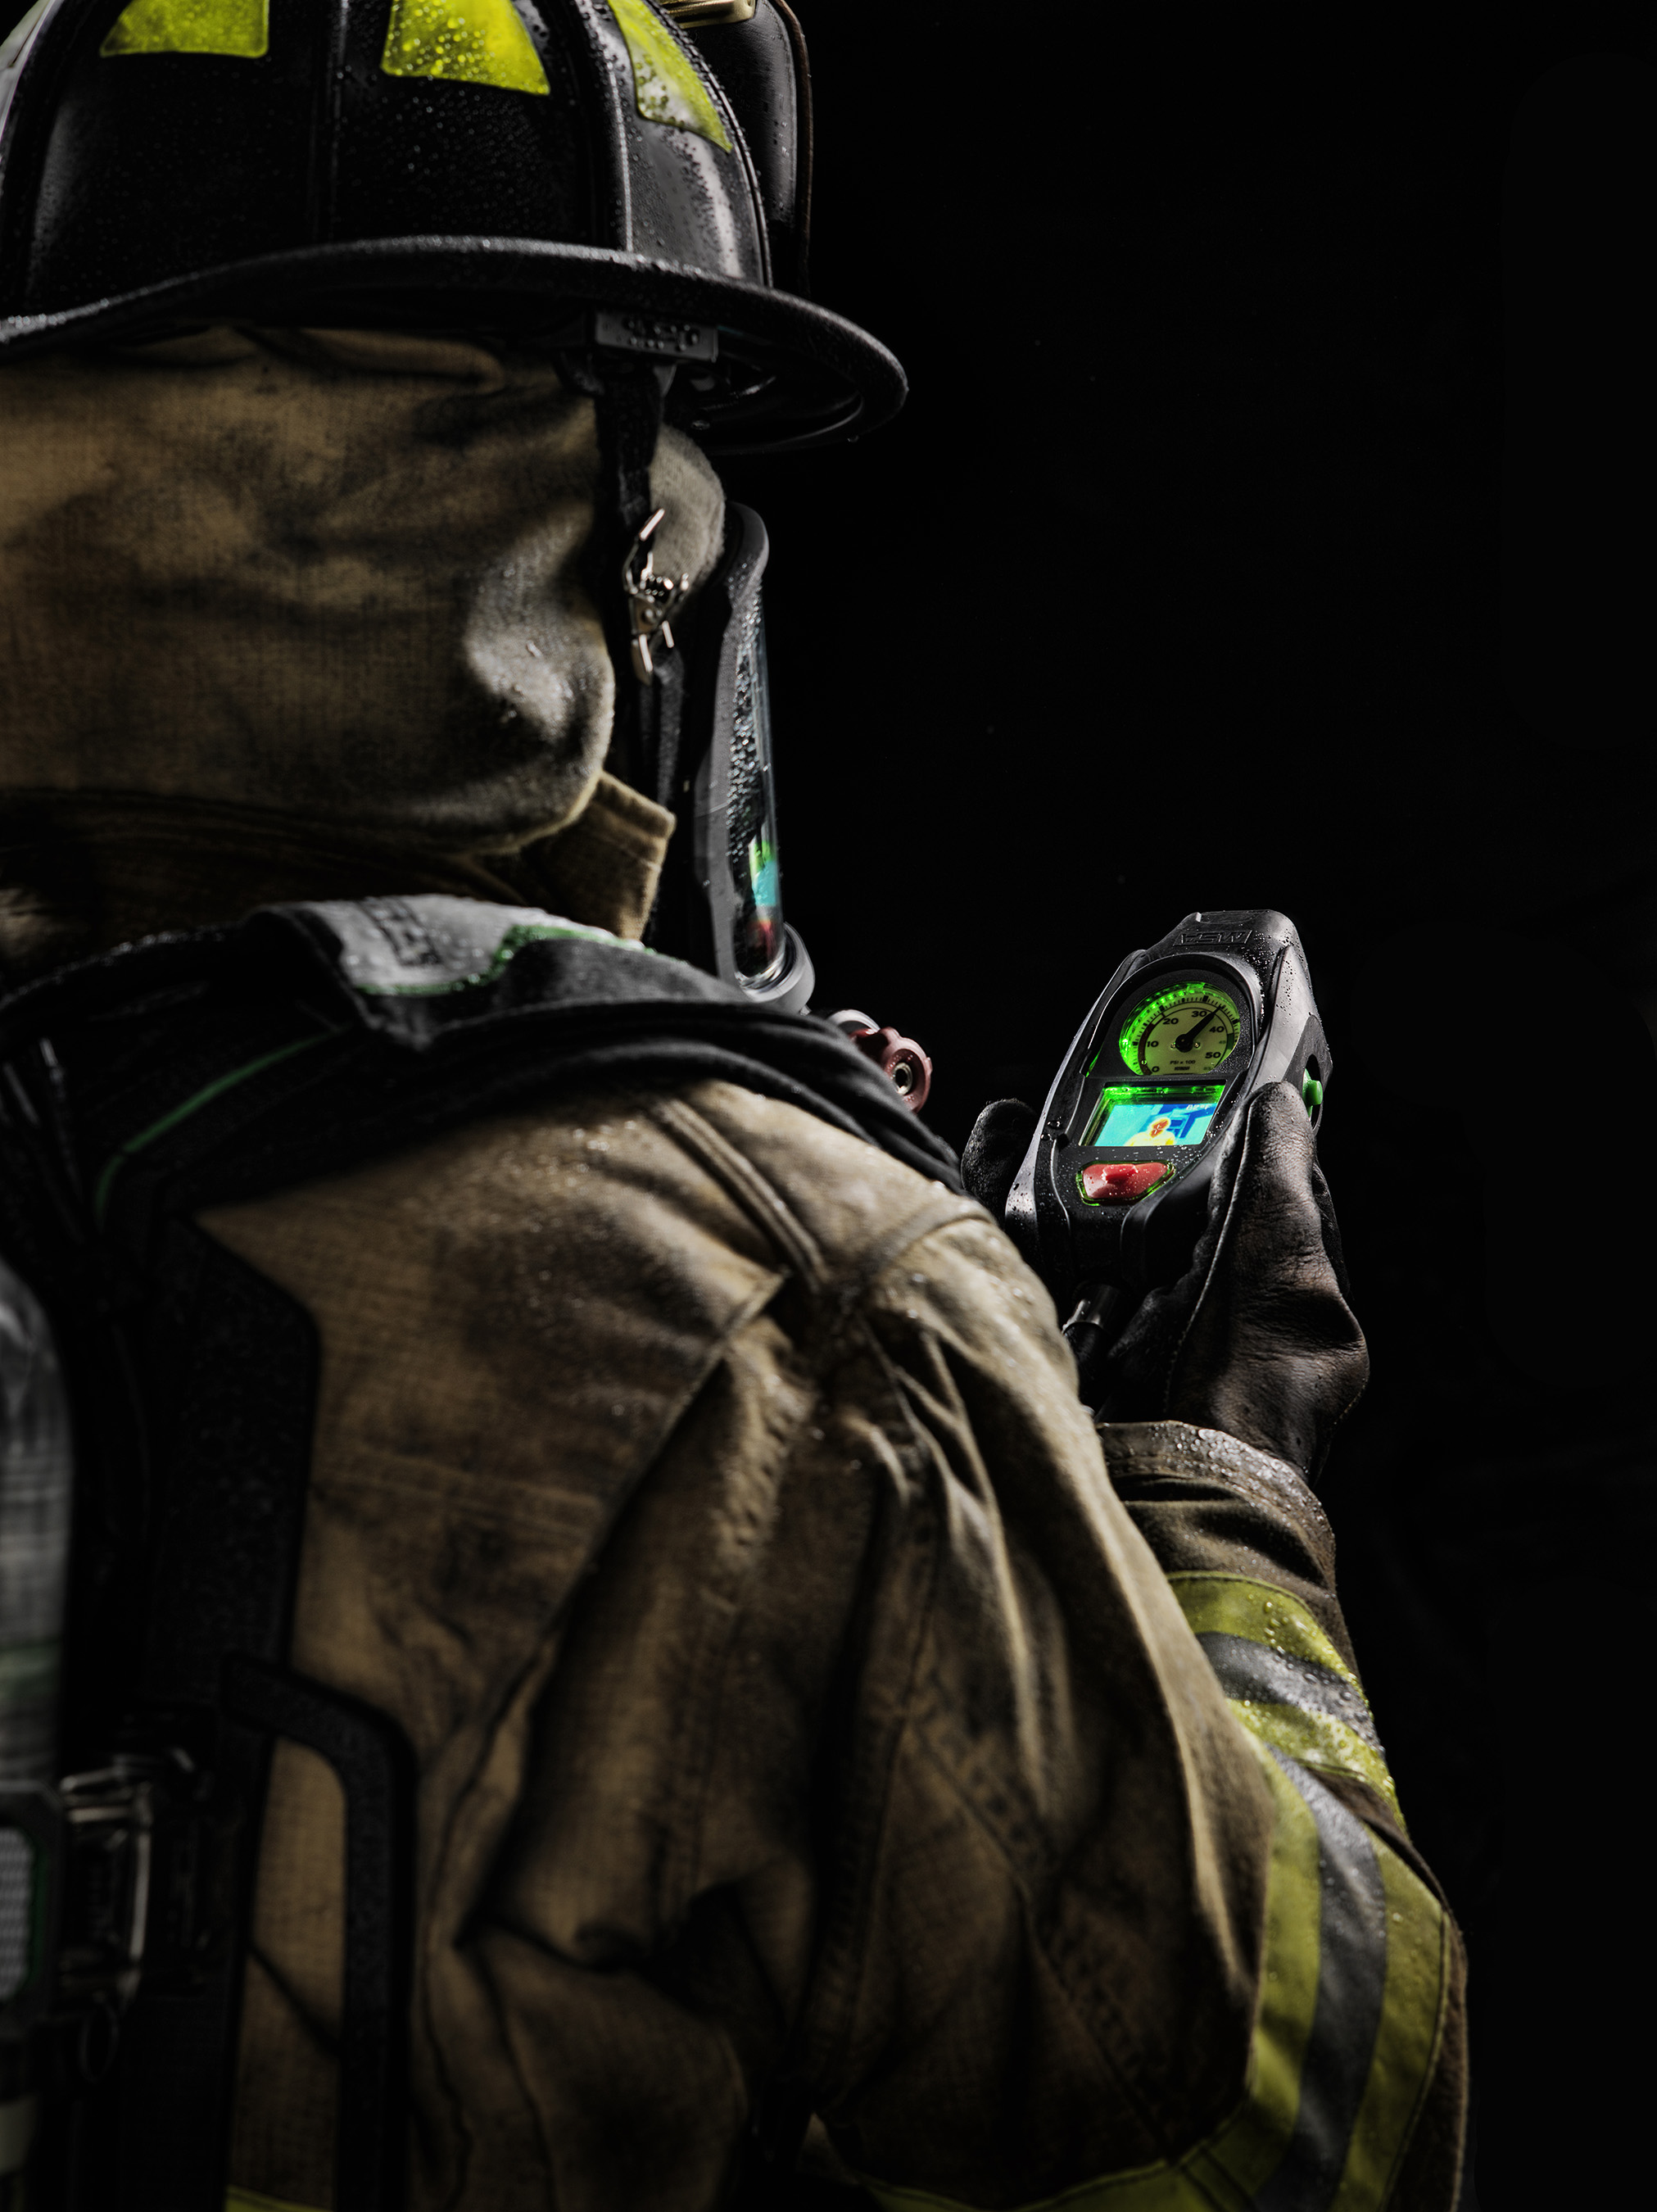 A crisp, clear image provides every firefighter the ability to see the scene and environment around them.